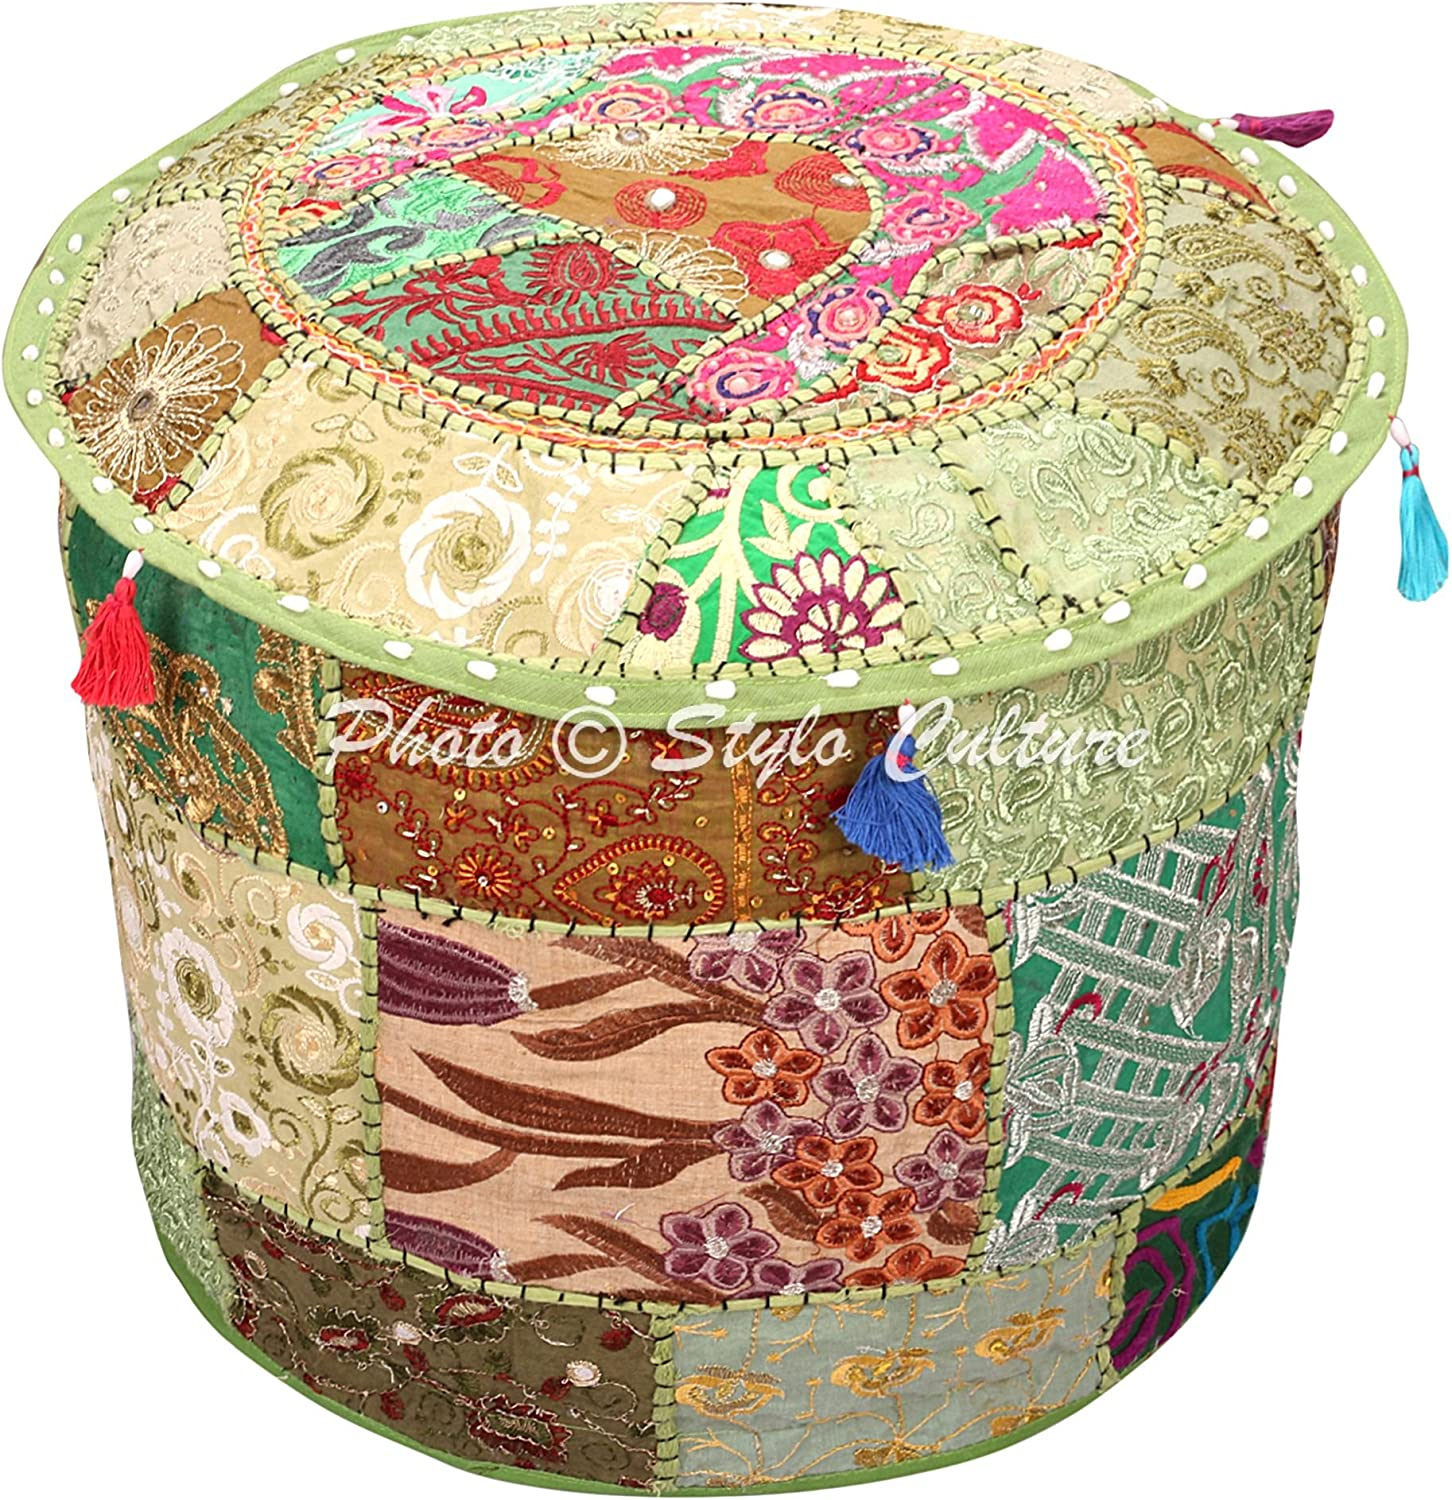 Stylo Culture Ethnic Bohemian Patchwork Pouf Cover Round Embroidered Pouffe Ottoman Green Cotton Floral Traditional Furniture Footstool Seat Puff (16x16x13) Bean Bag Living Room Decor